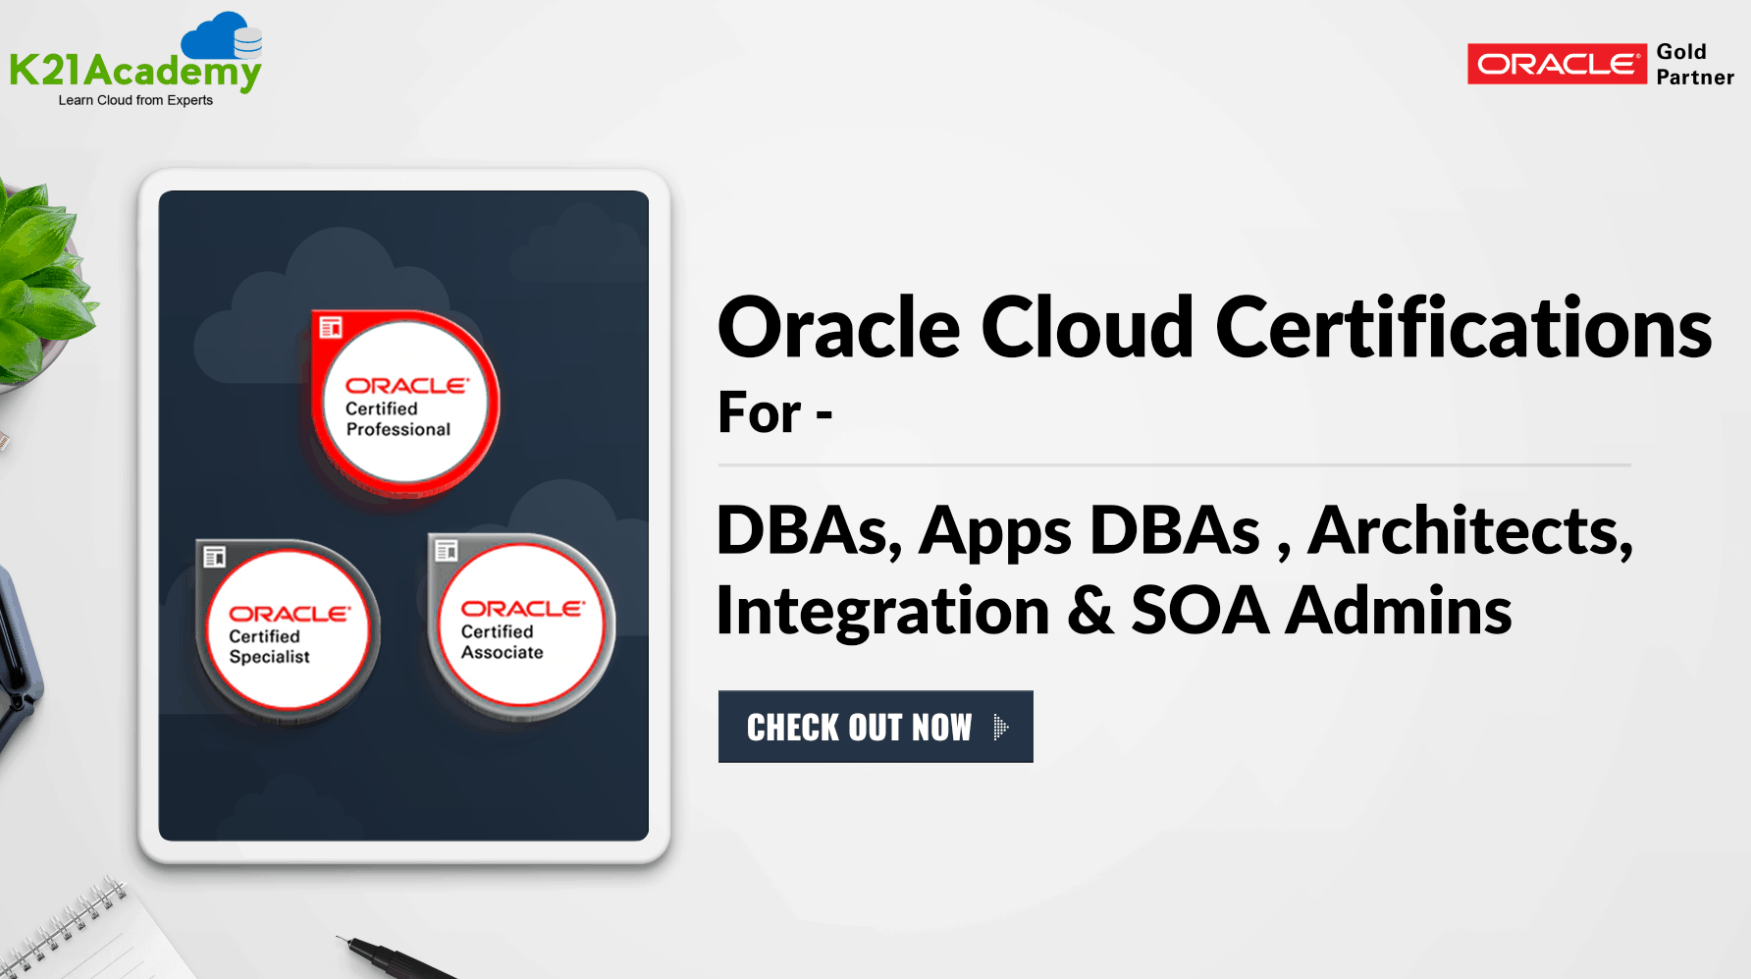 cloud oracle certifications dbas admins soa integration architects apps security certification